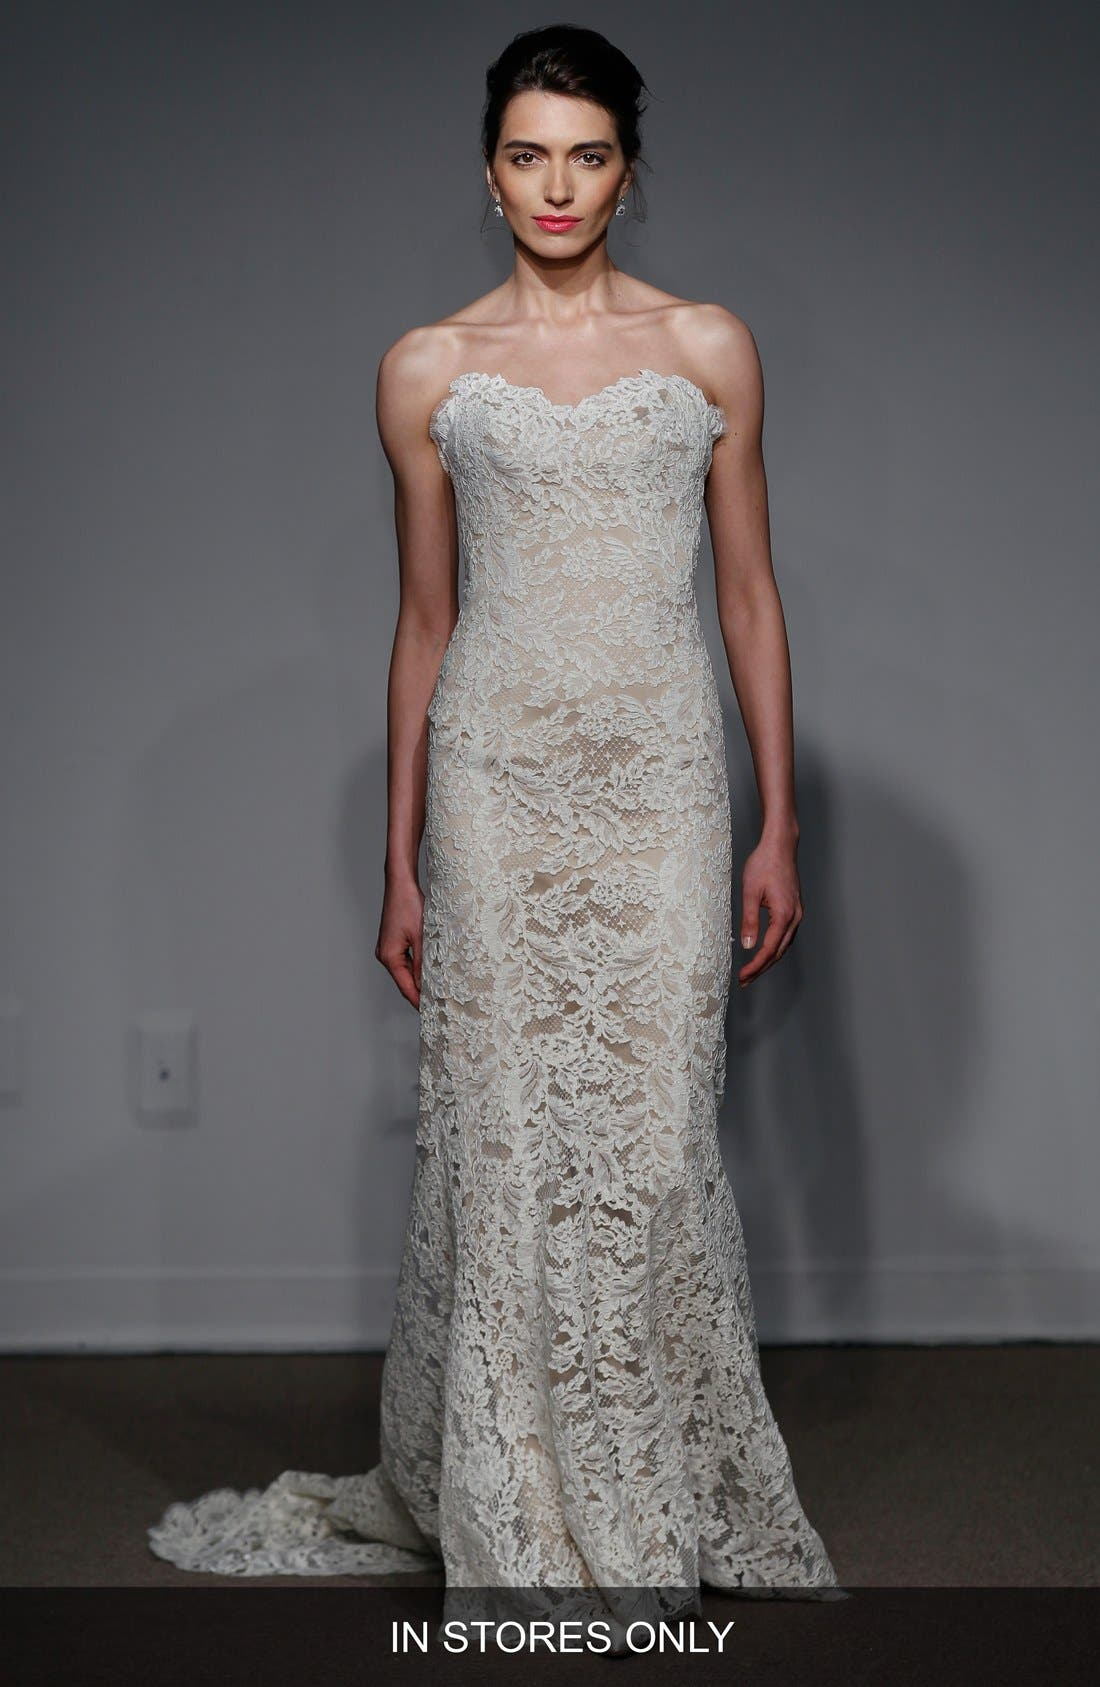 Anna Maier Couture 'Lyon' Strapless Lace Column Gown (In Stores Only)